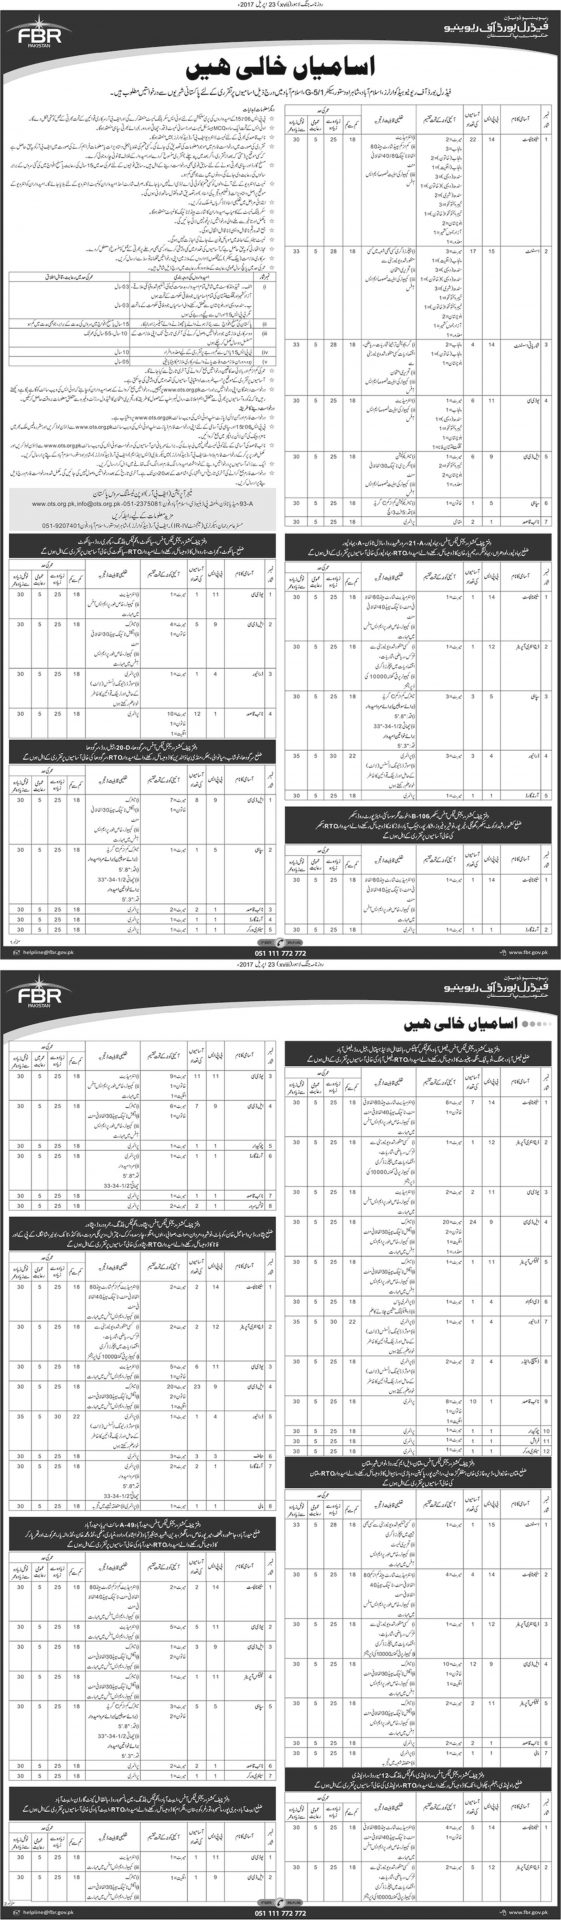 Federal Board of Revenue Jobs 2017 FBR OTS Application Form, Last Date